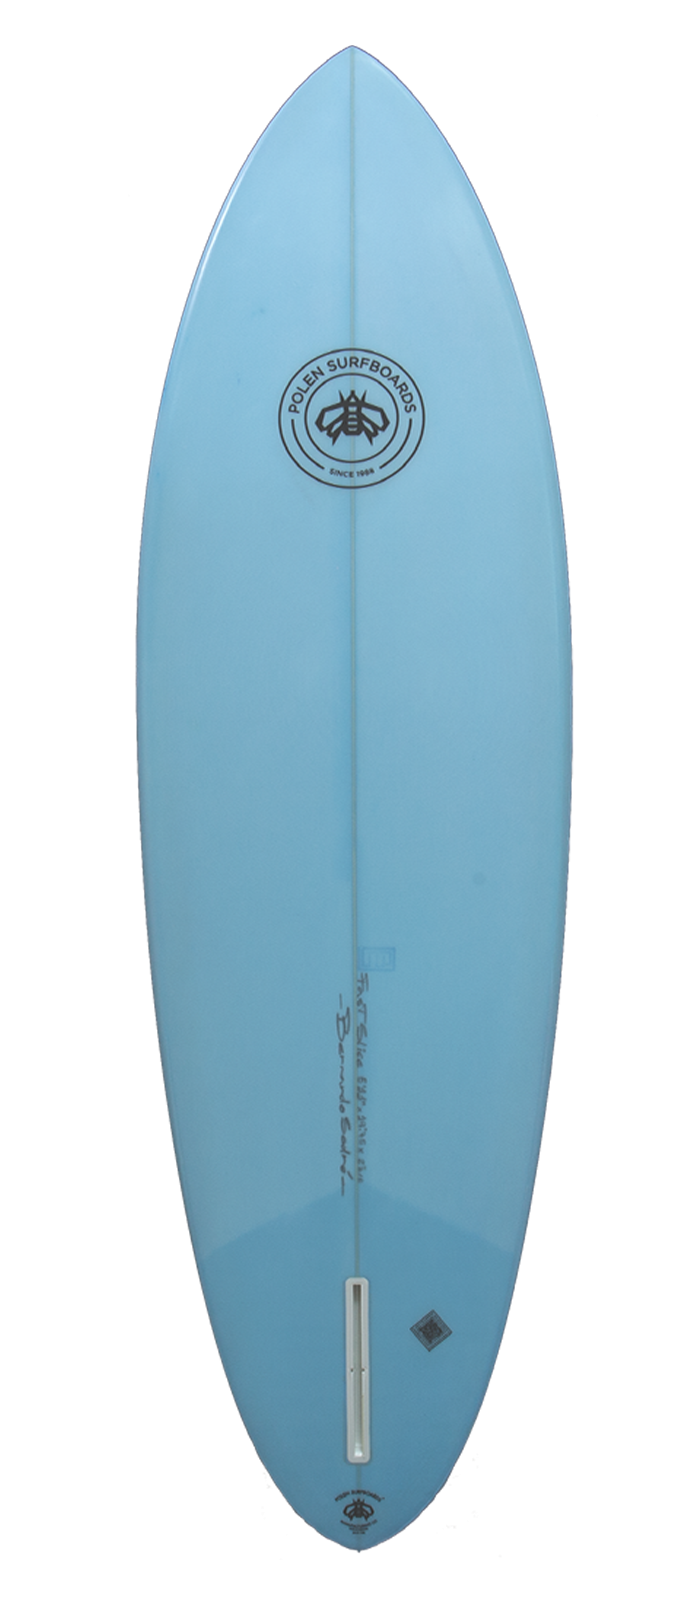 FAST SLICE surfboard model bottom